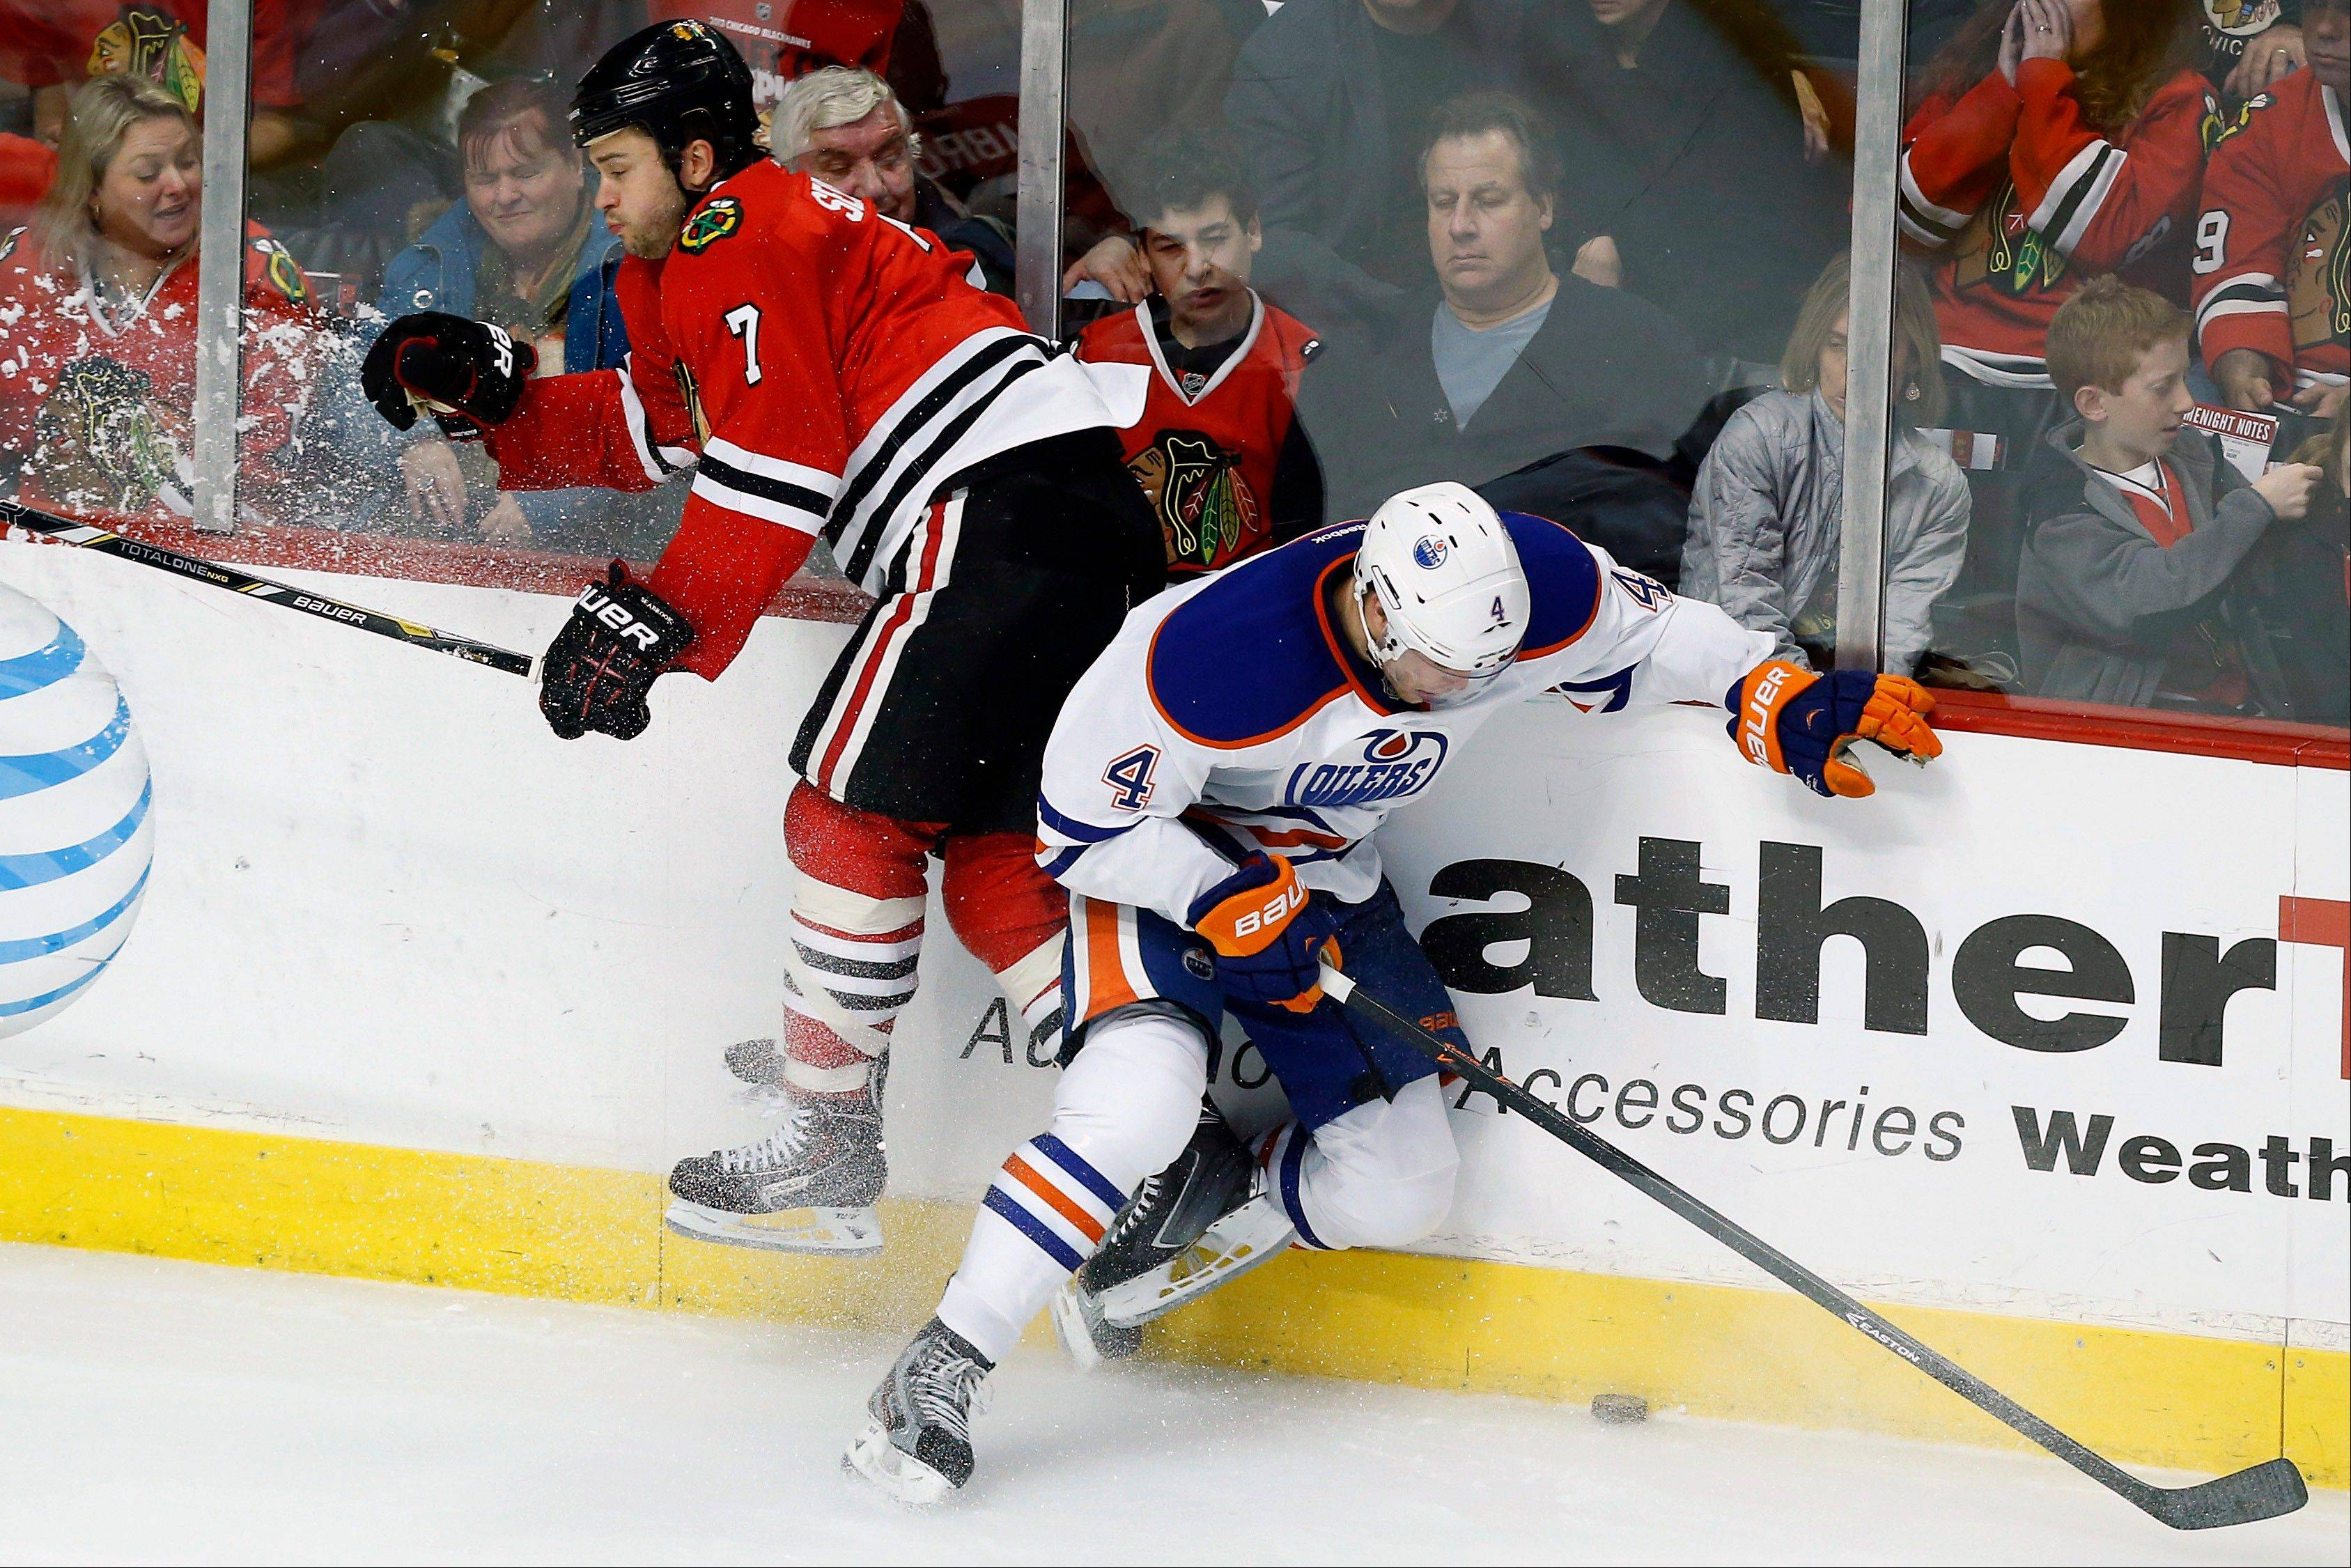 Blackhawks defenseman Brent Seabrook (7) and Edmonton Oilers left wing Taylor Hall (4) hit the glass over the puck during the second period of an NHL hockey game on Sunday, Nov. 10, 2013, in Chicago.